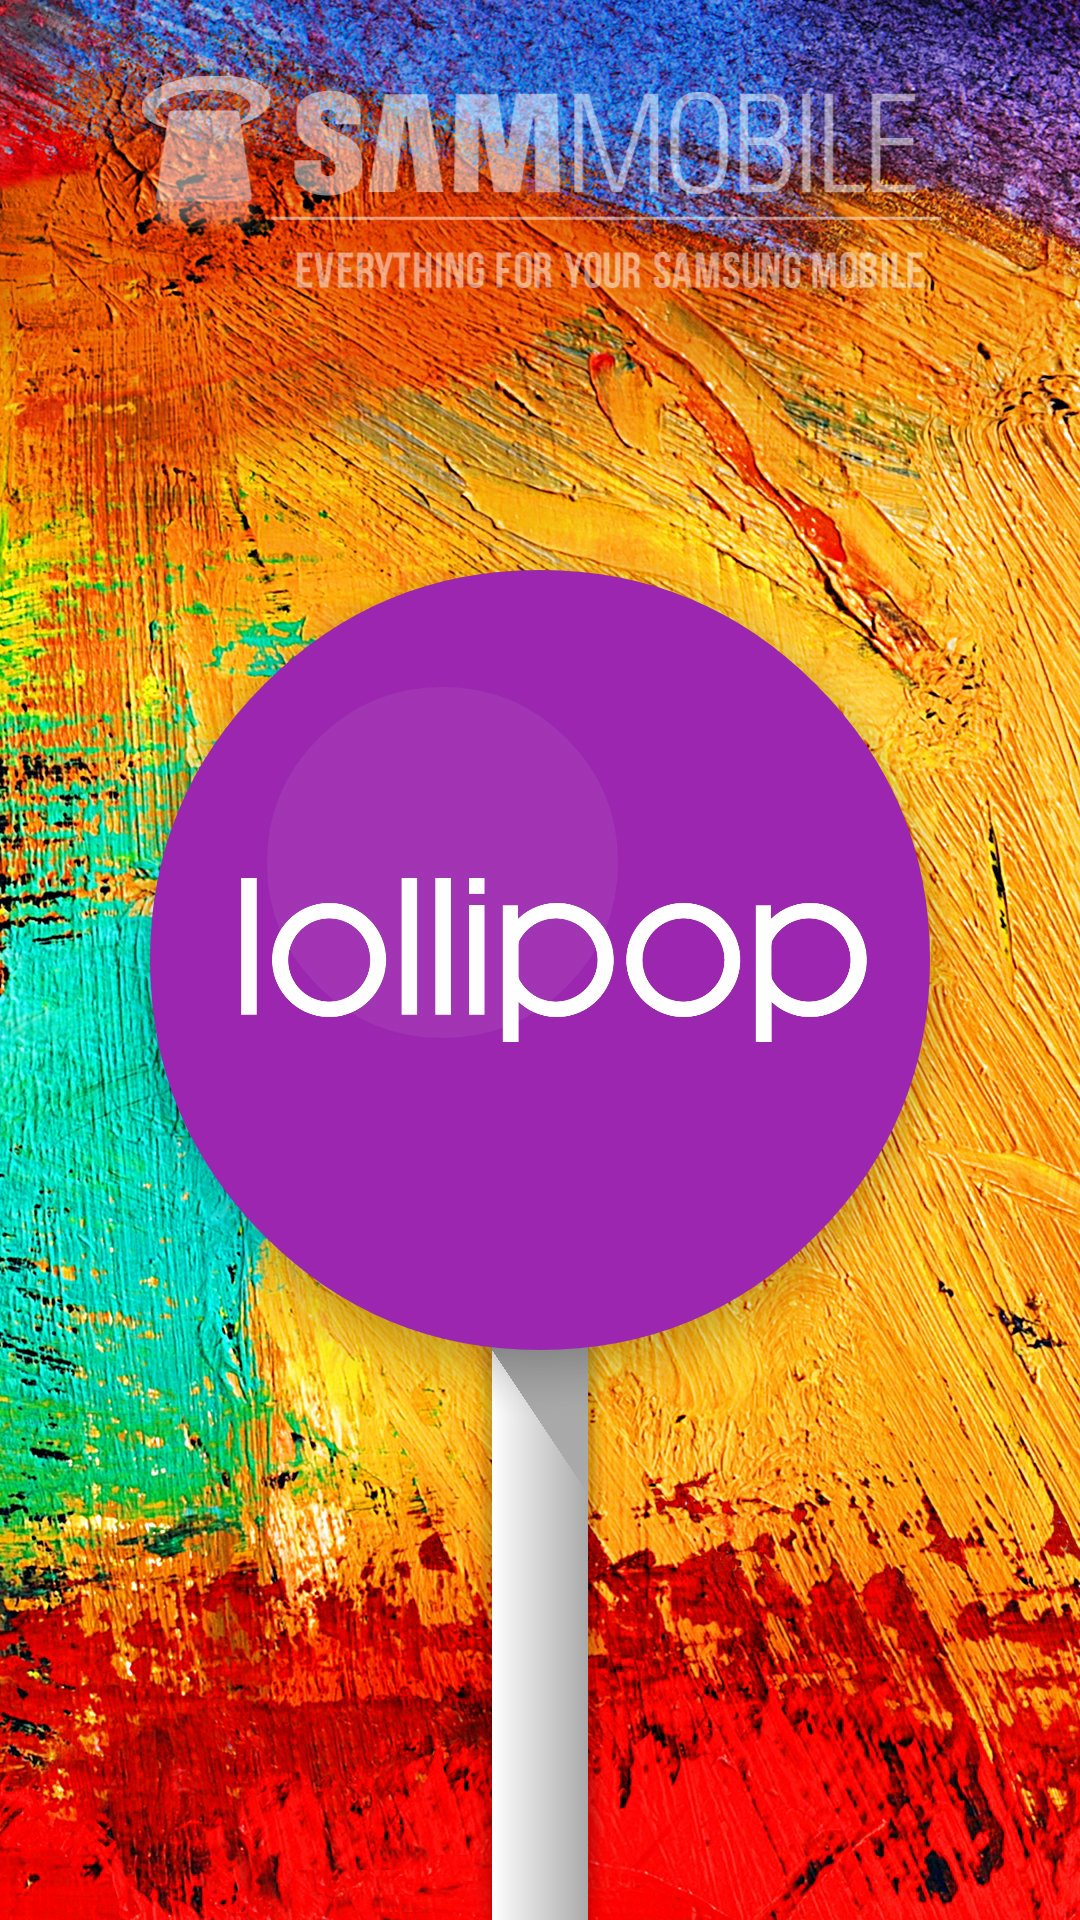 Galaxy Note 3 Running Android 5.0 Lollipop Gets Previewed in Video